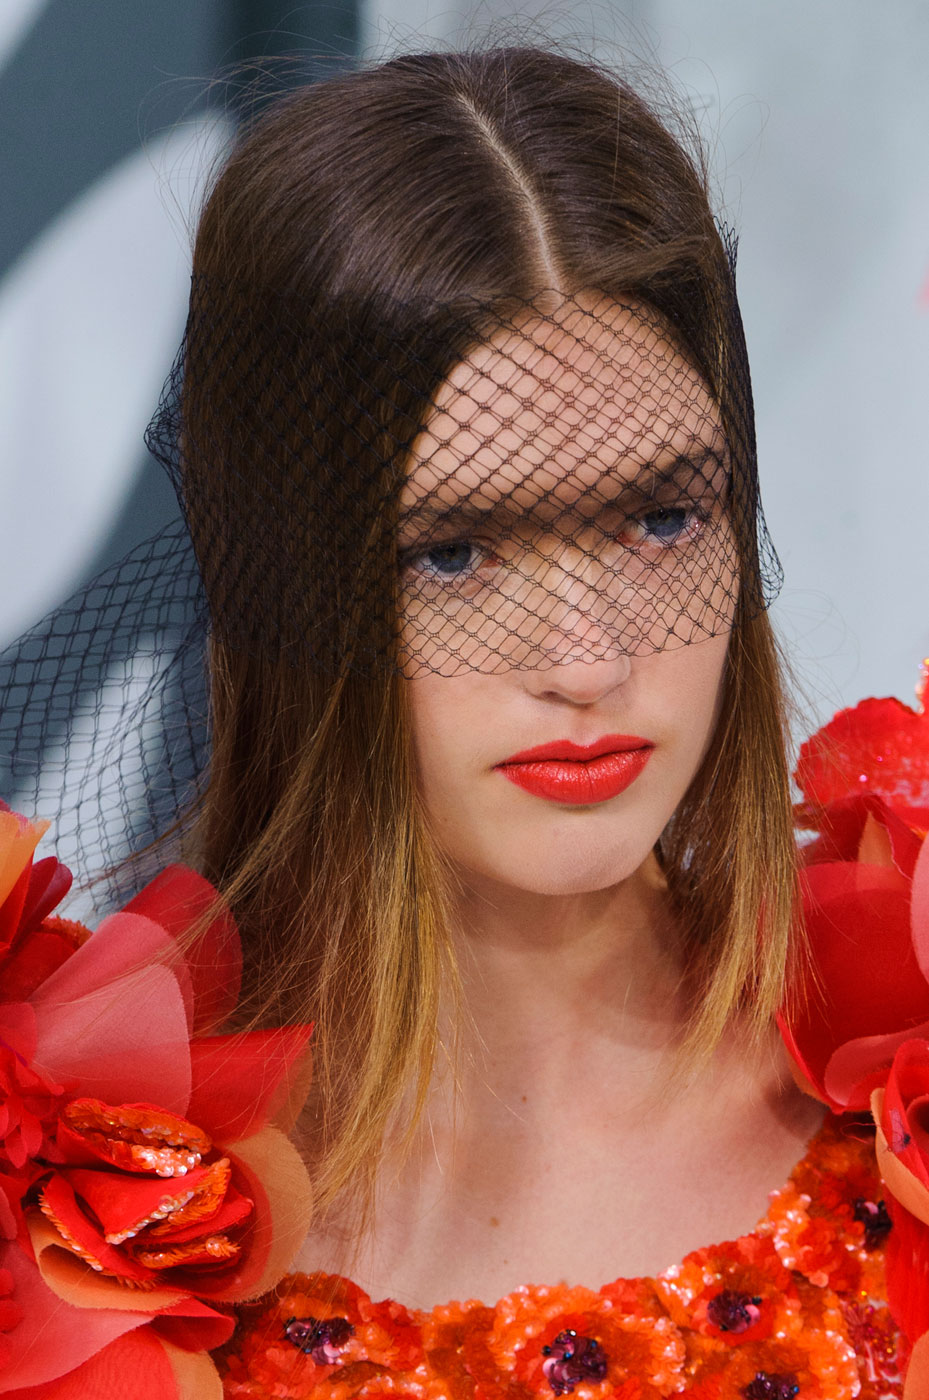 Chanel-fashion-runway-show-close-ups-haute-couture-paris-spring-summer-2015-the-impression-077